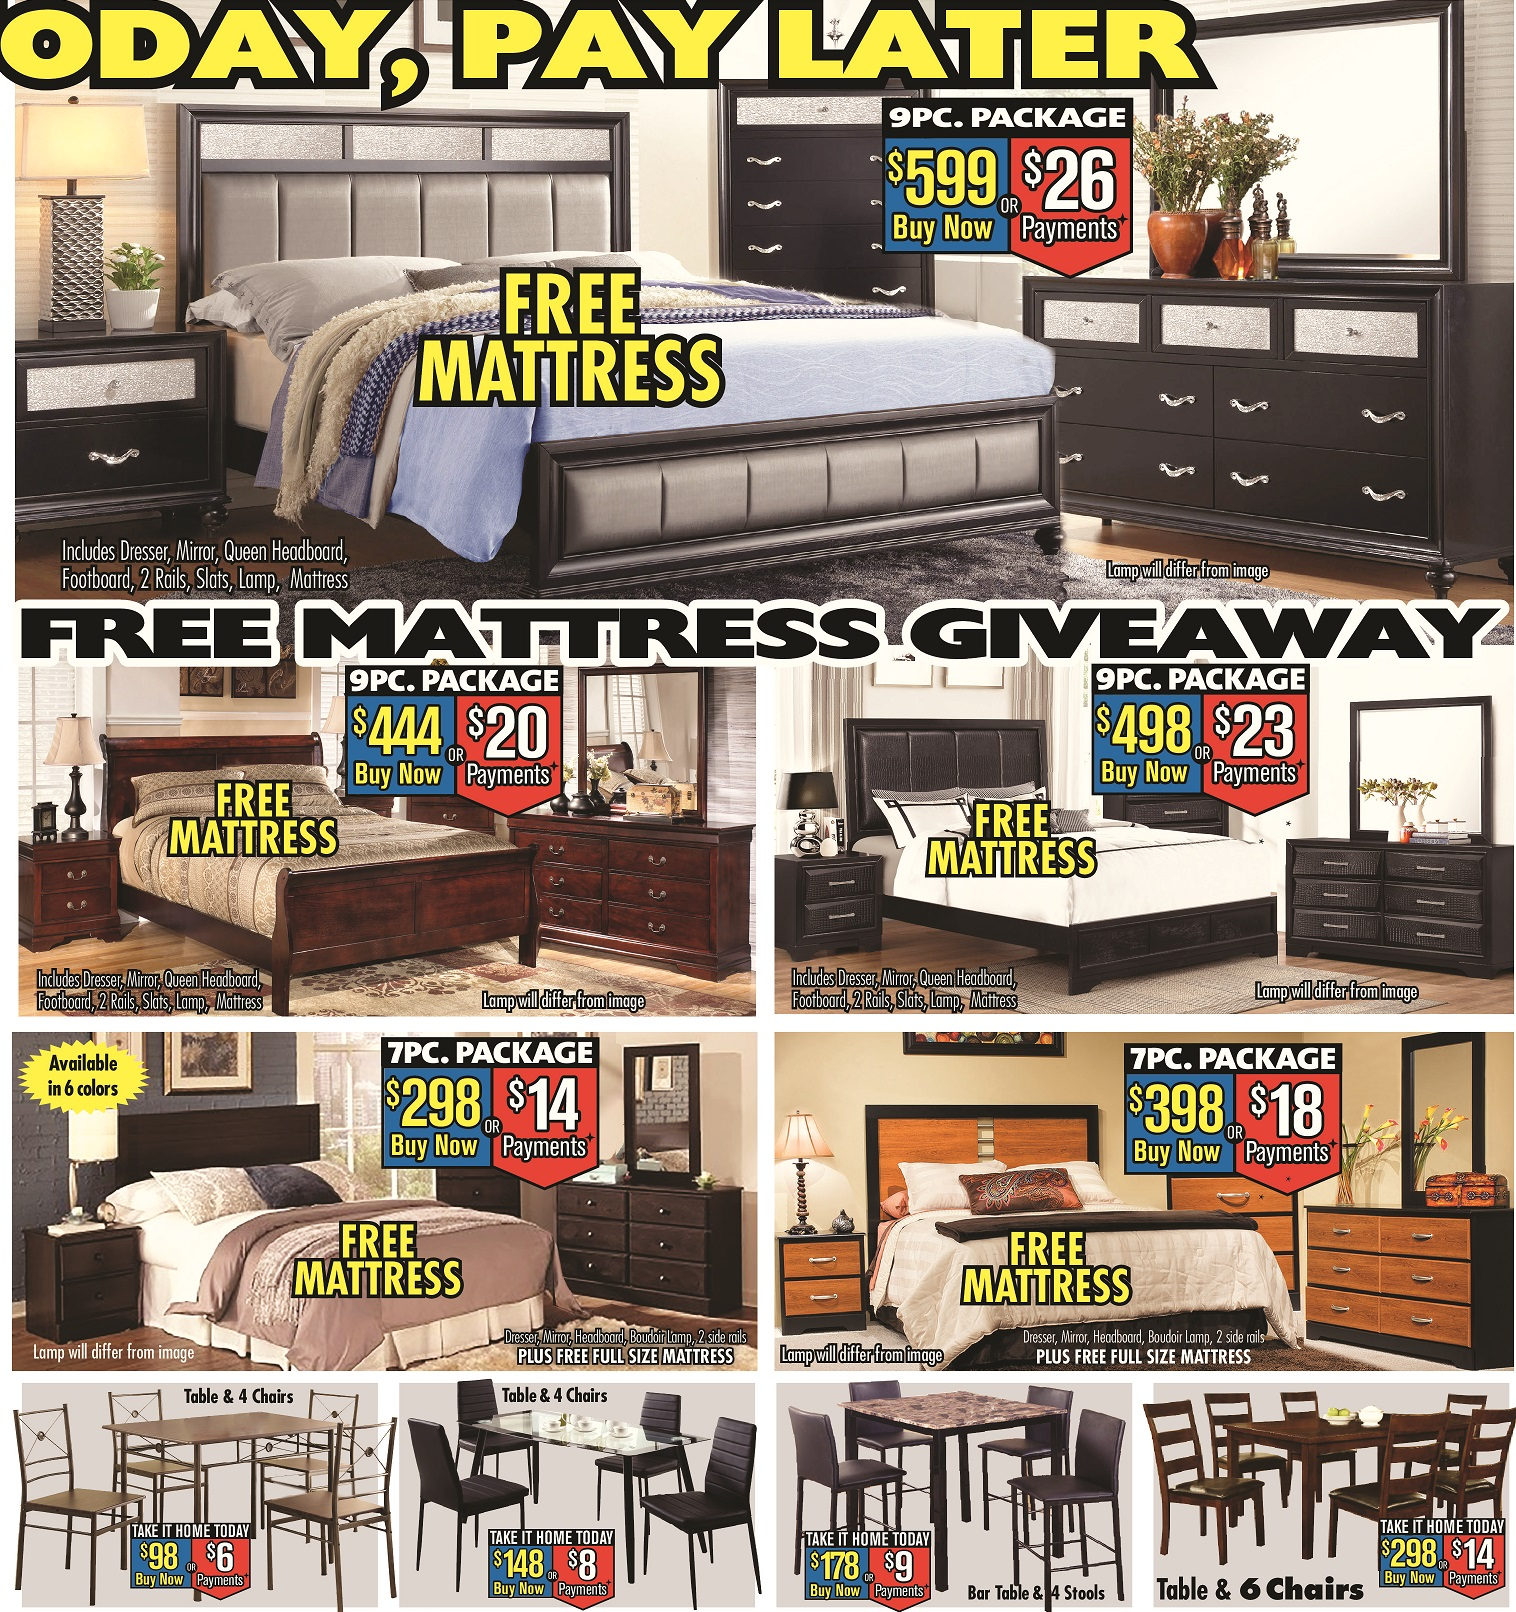 Price Busters Discount Furniture in Edgewood MD 410